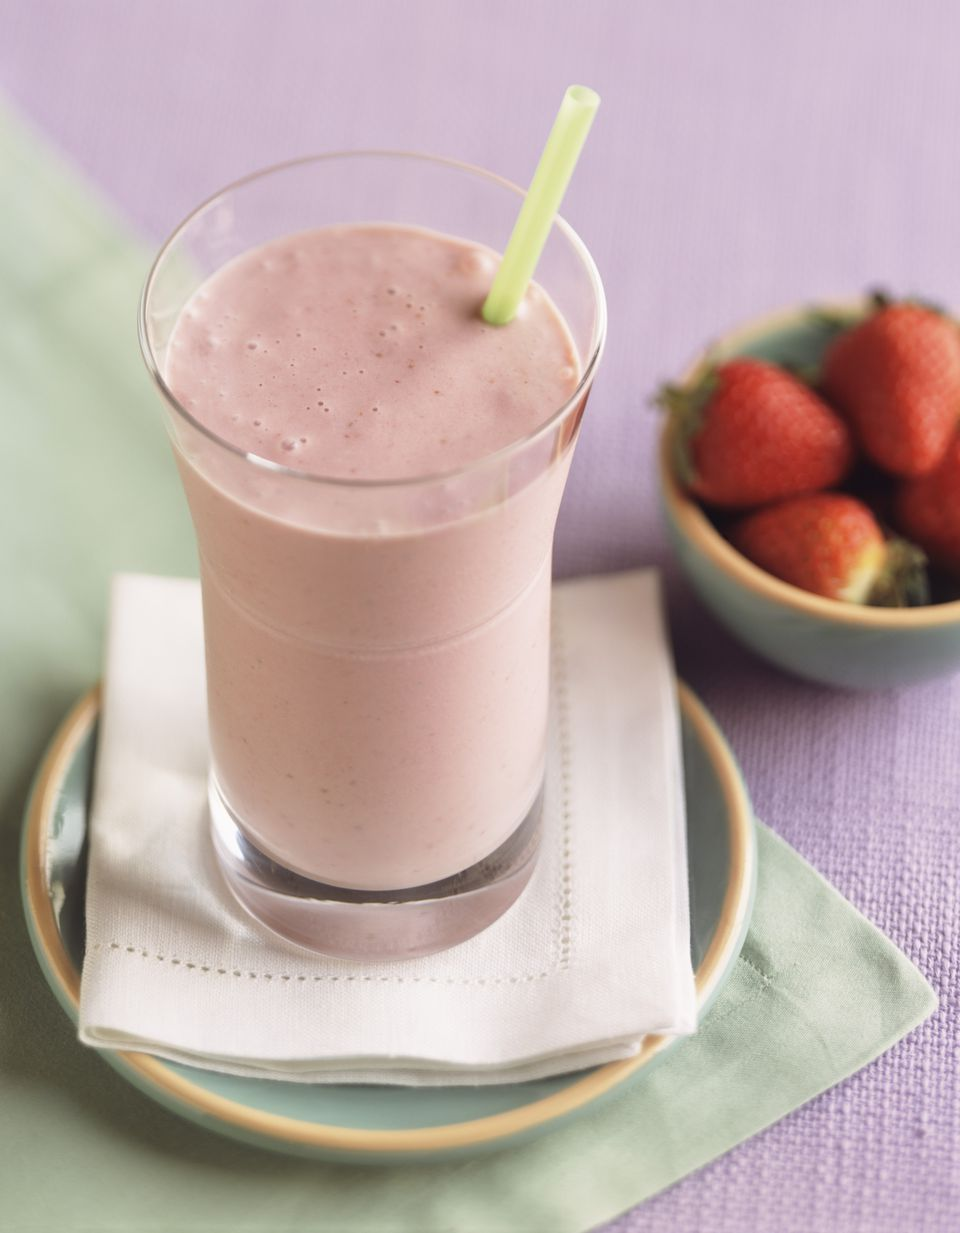 strawberry-creamy-smoothie-getty-2786-x-3577.jpg